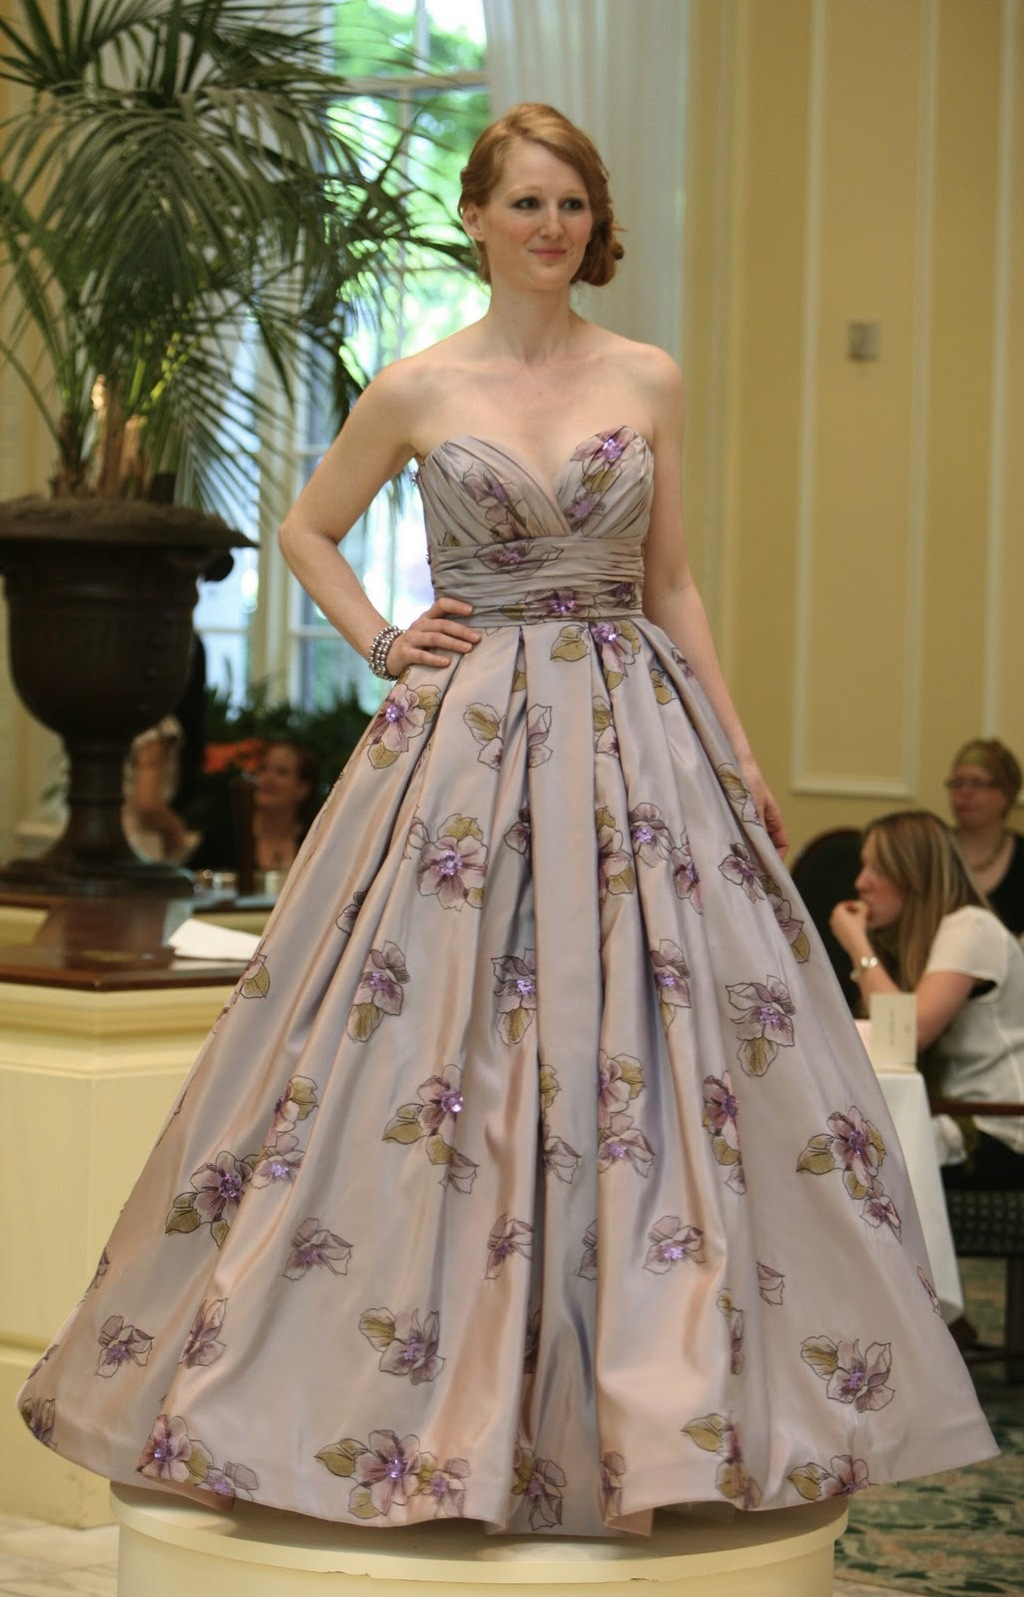 French-inspired-patterned-floral-wedding-dress-sweetheart-neckline.full